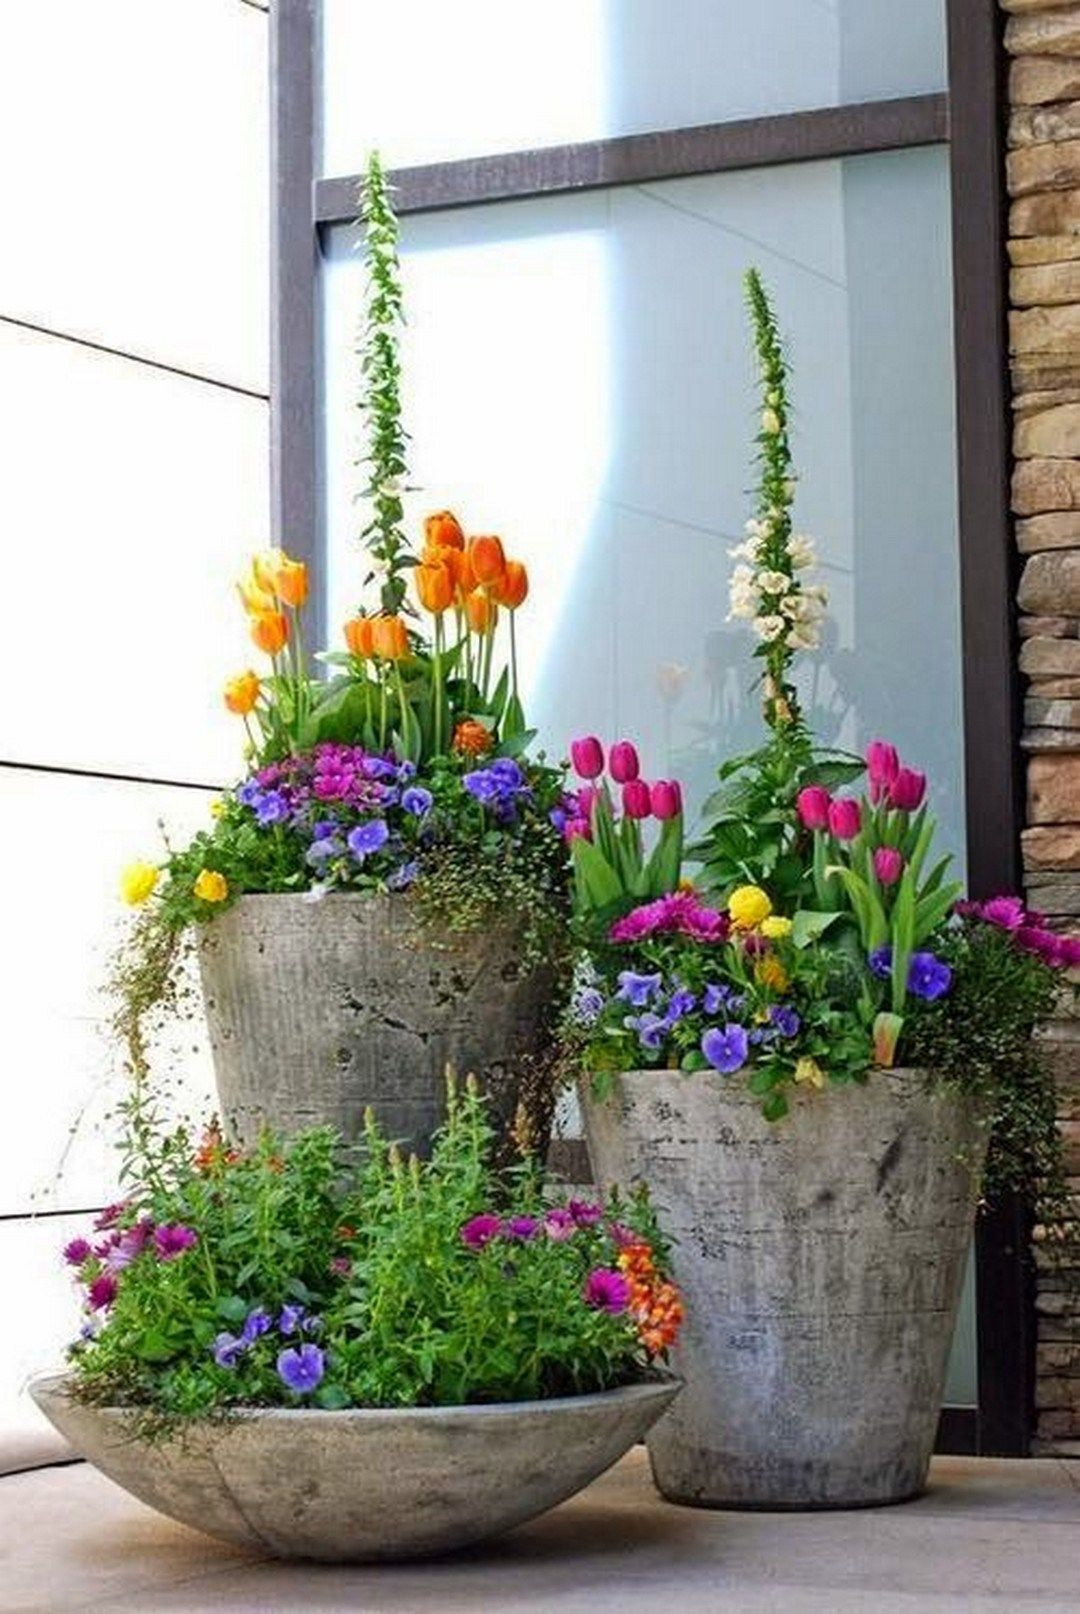 Best DIY Cottage Garden Ideas from Pinterest Garden